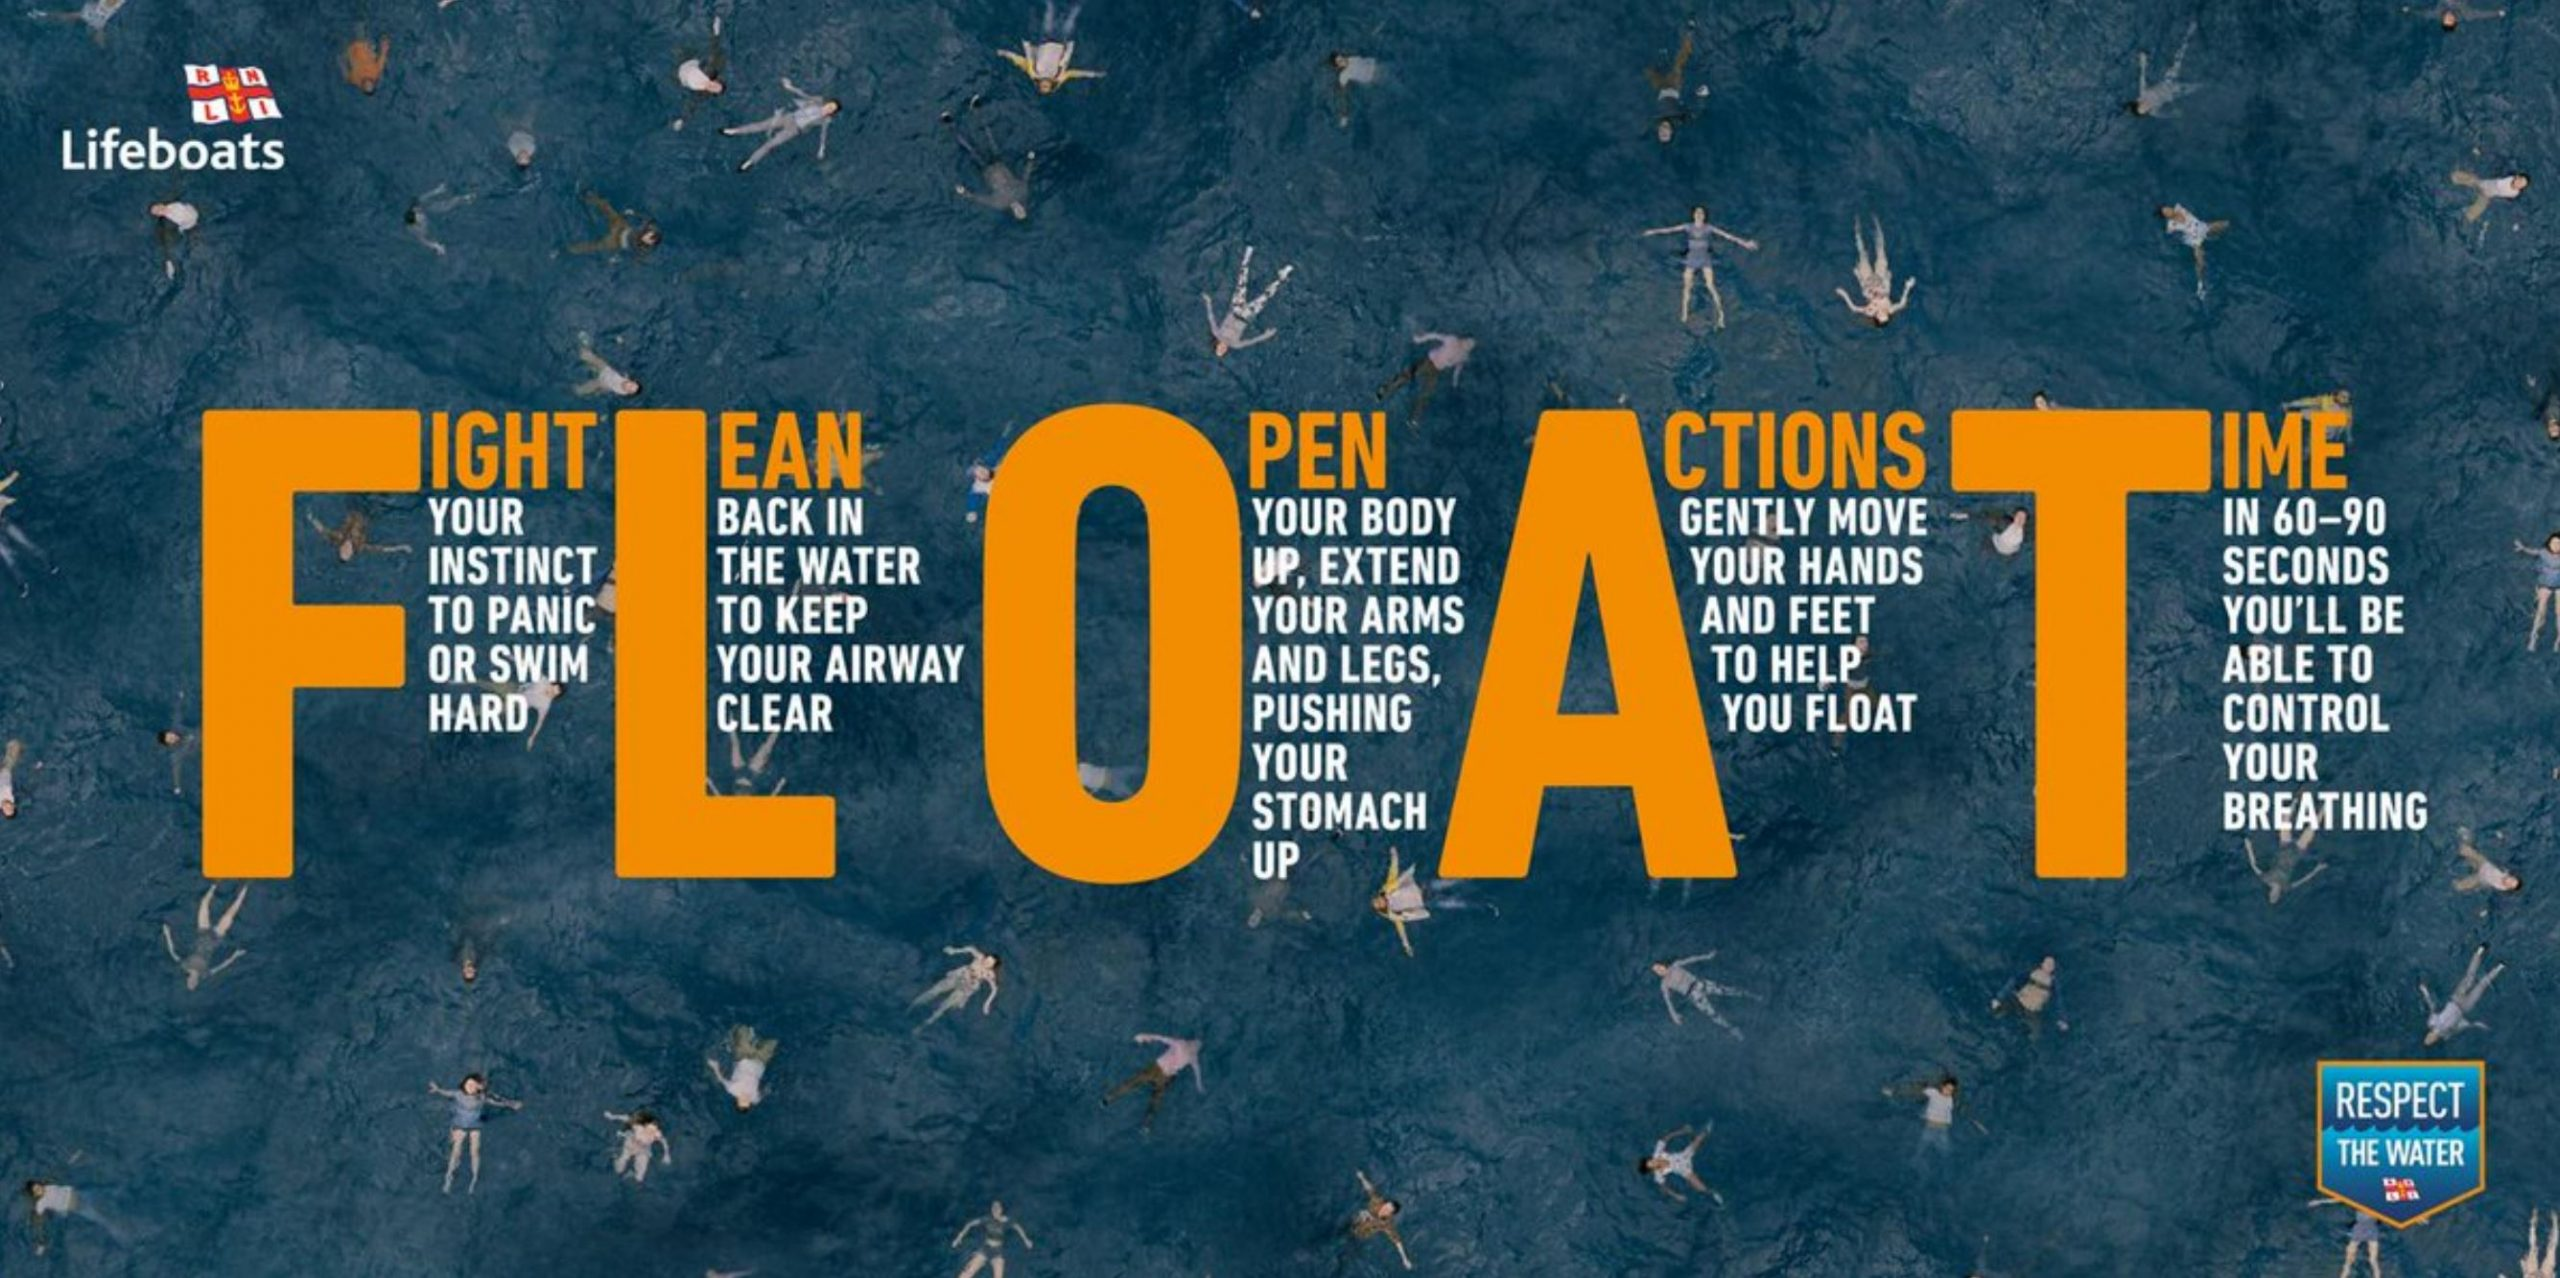 RNLI Messaging - FLOAT to stay alive